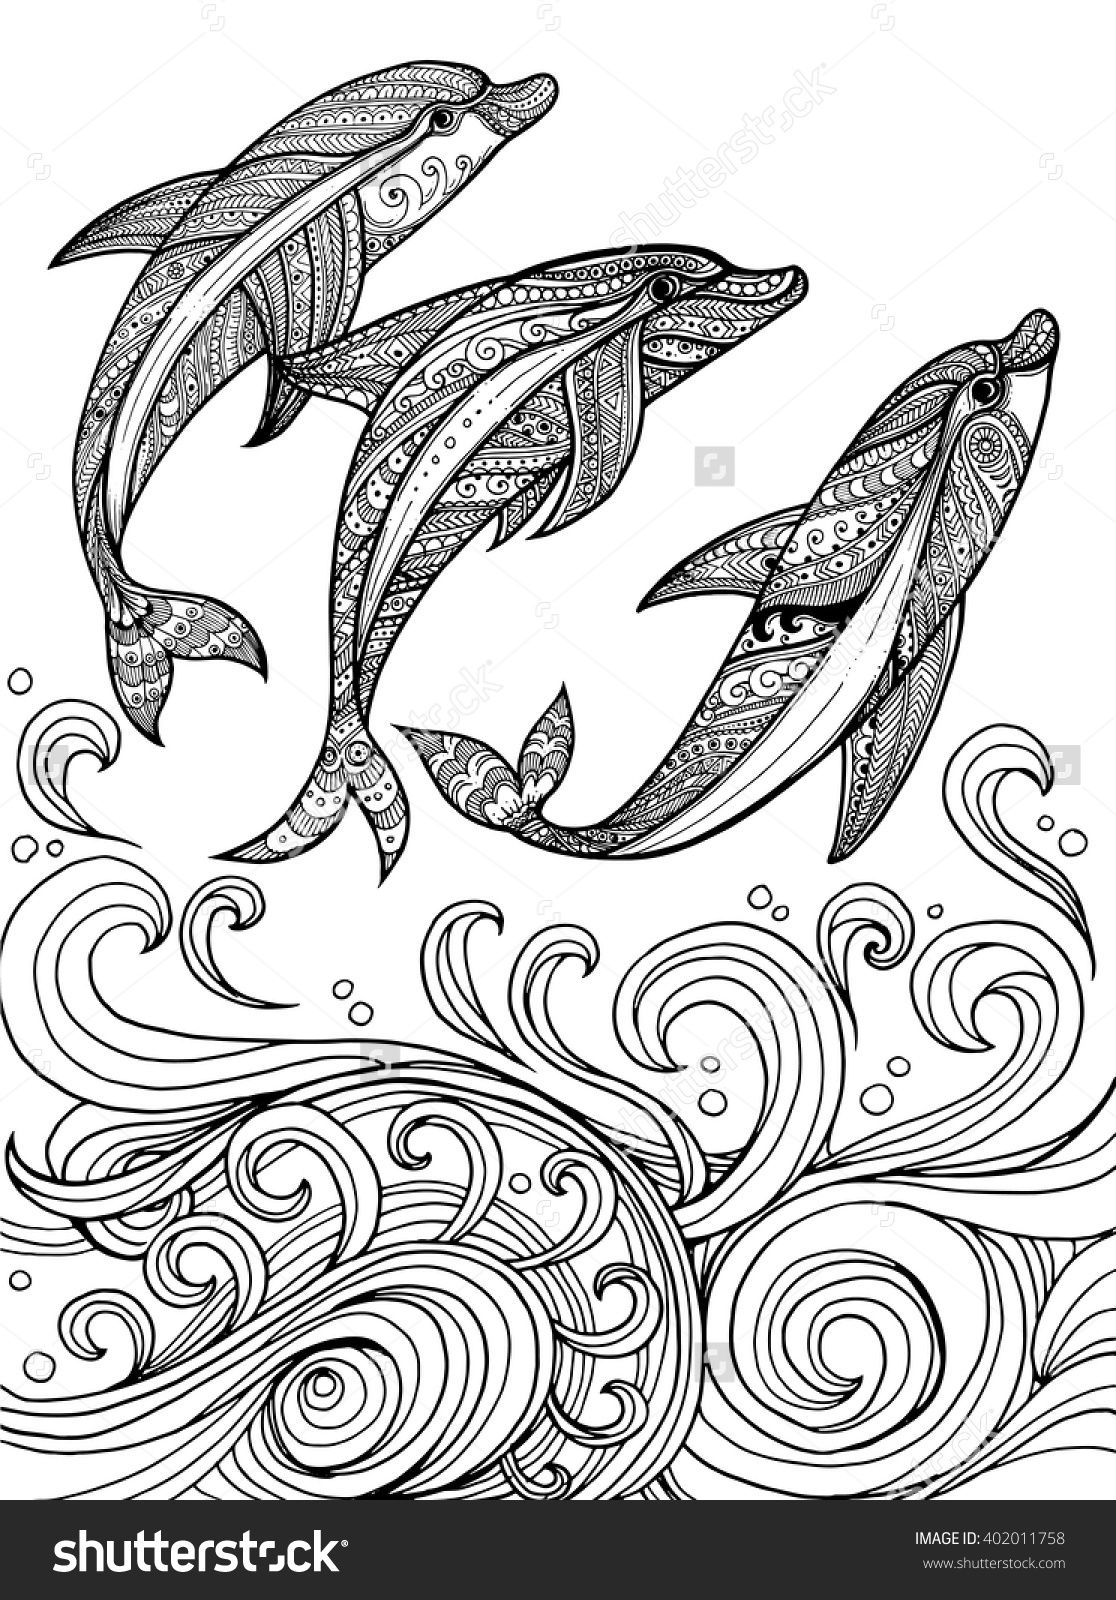 Disney zentangle coloring pages - Adult Coloring